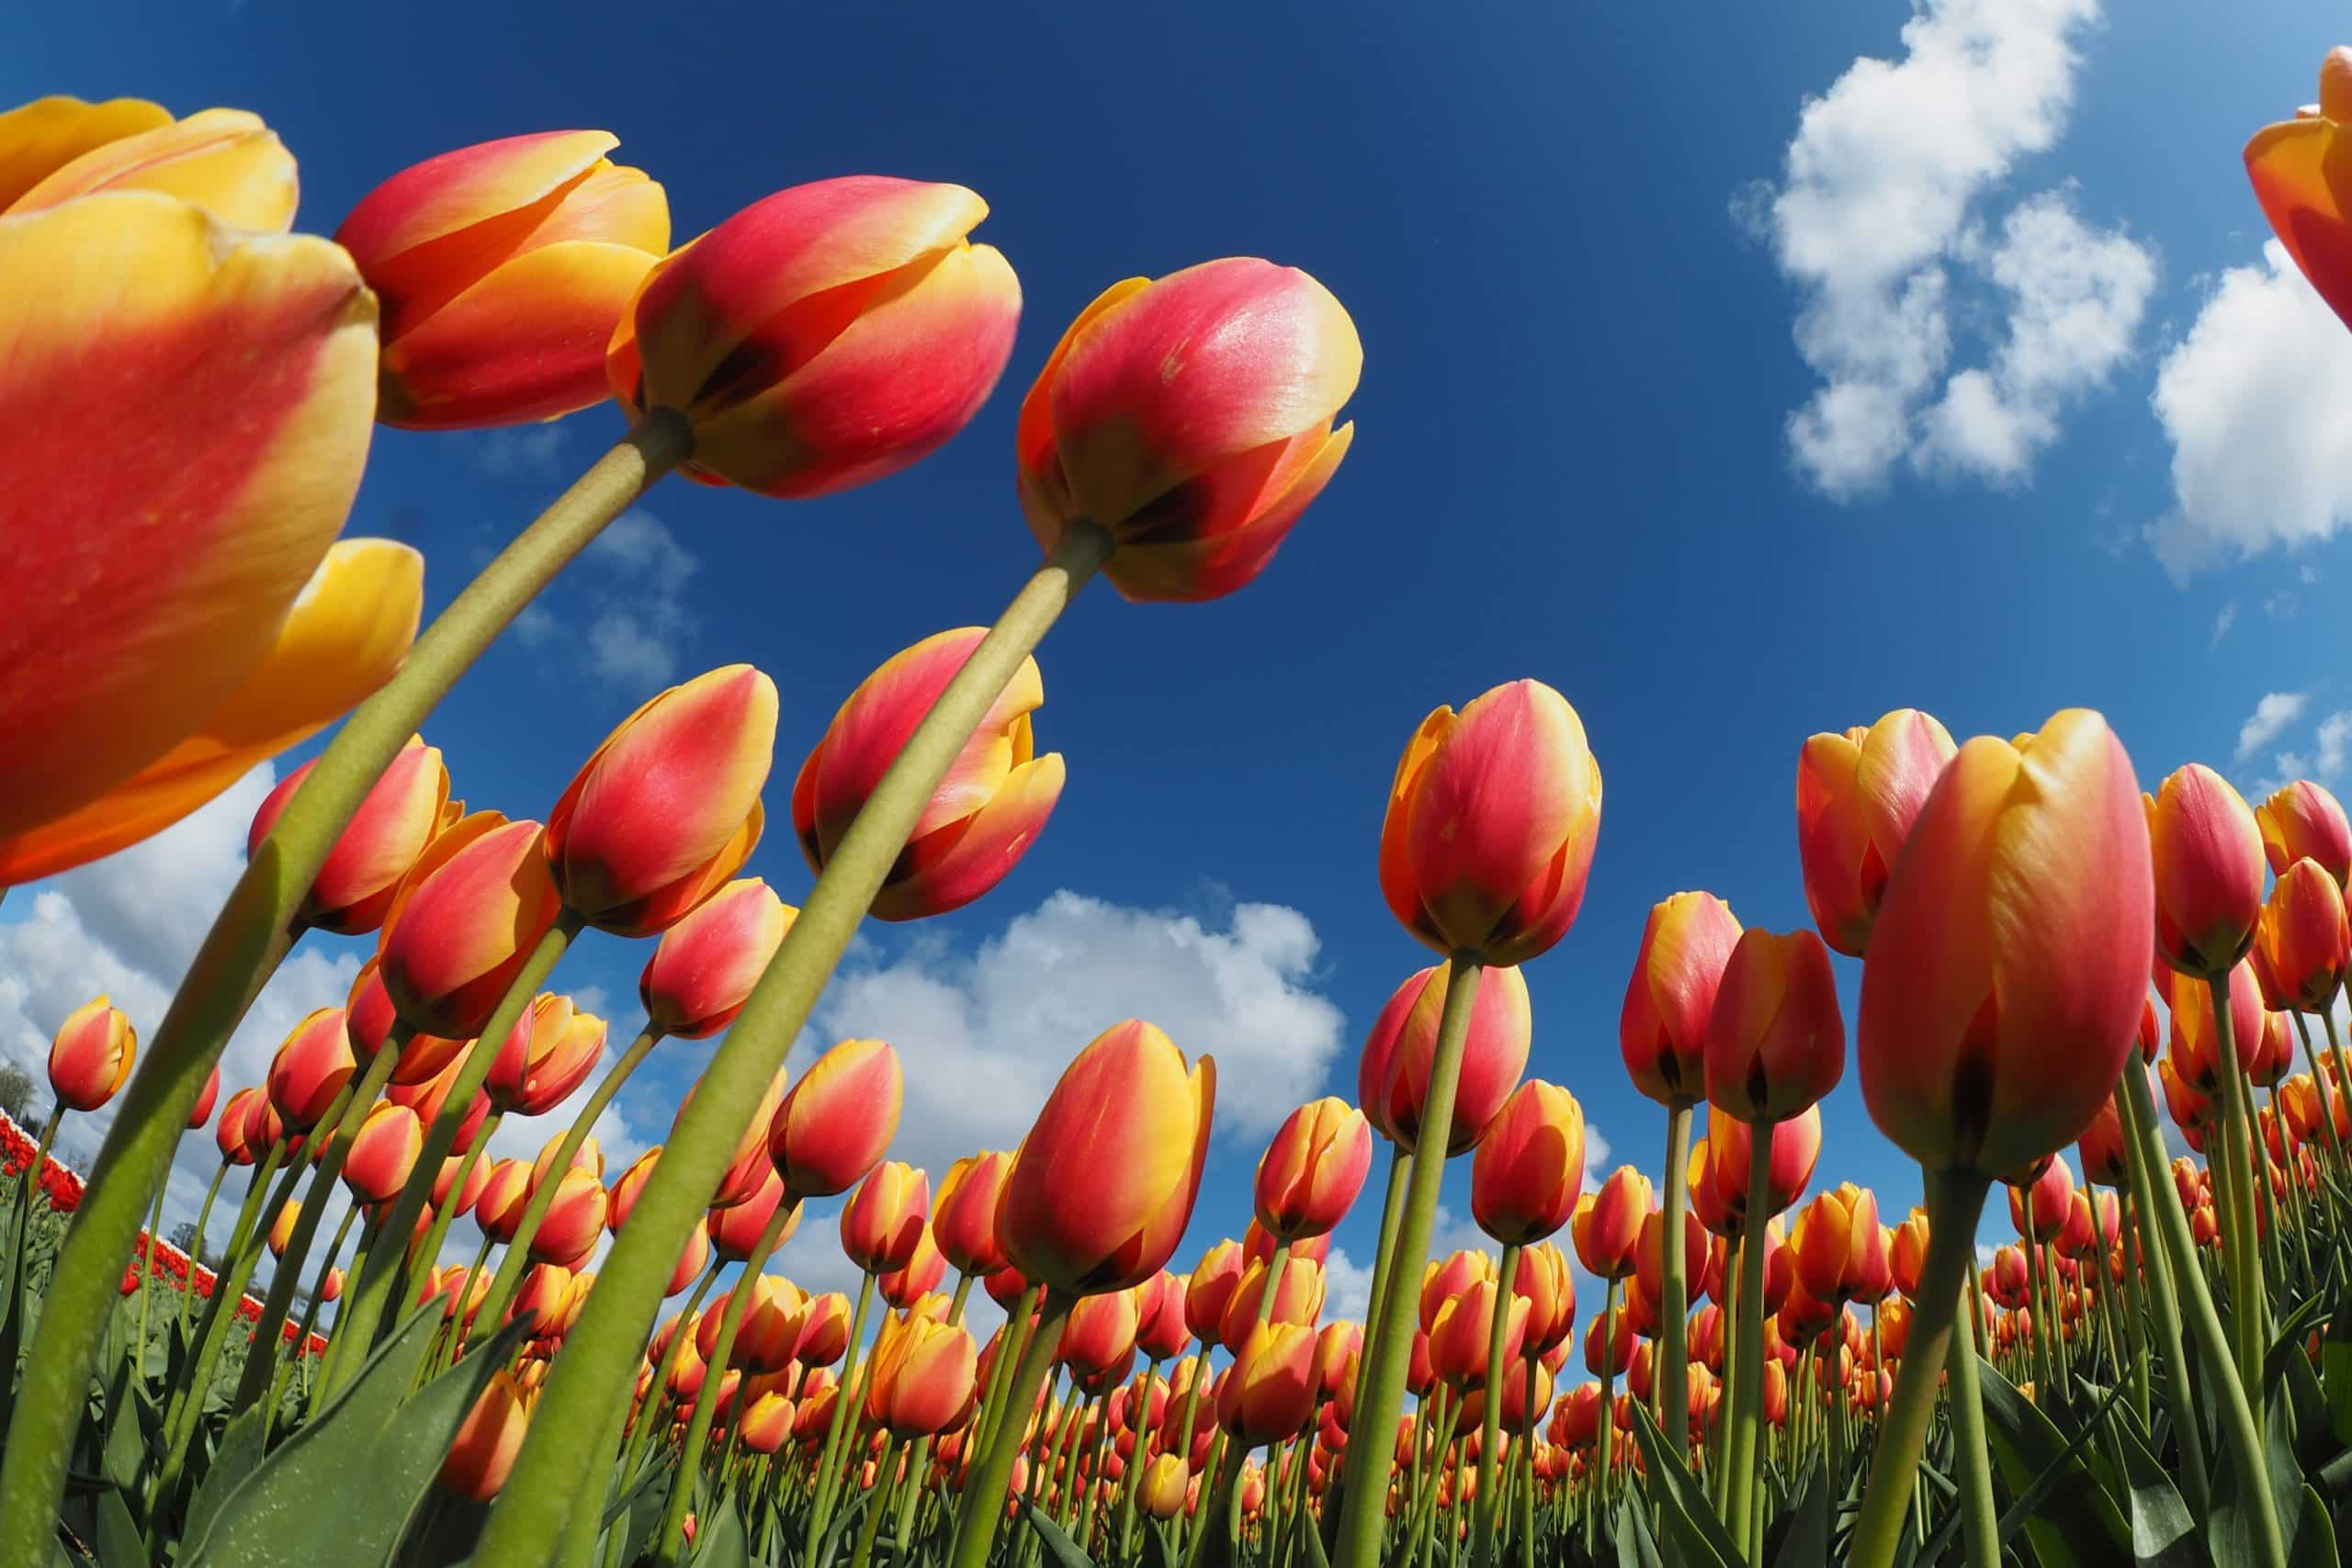 red and orange tulips in a green field on sunny day under a bright blue sky